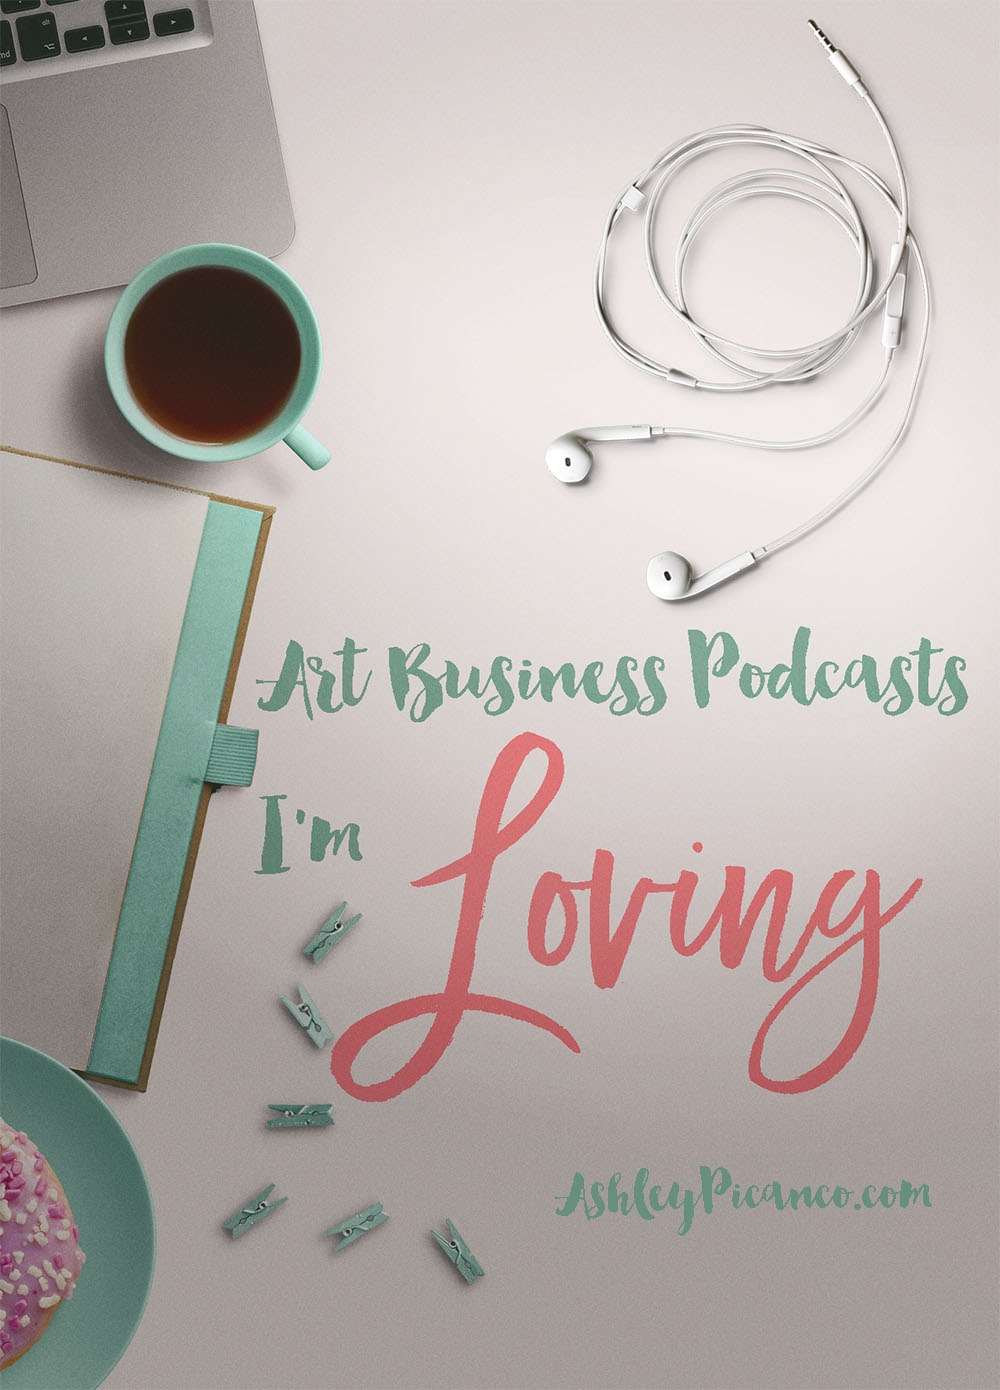 Art Business Podcasts I'm Loving